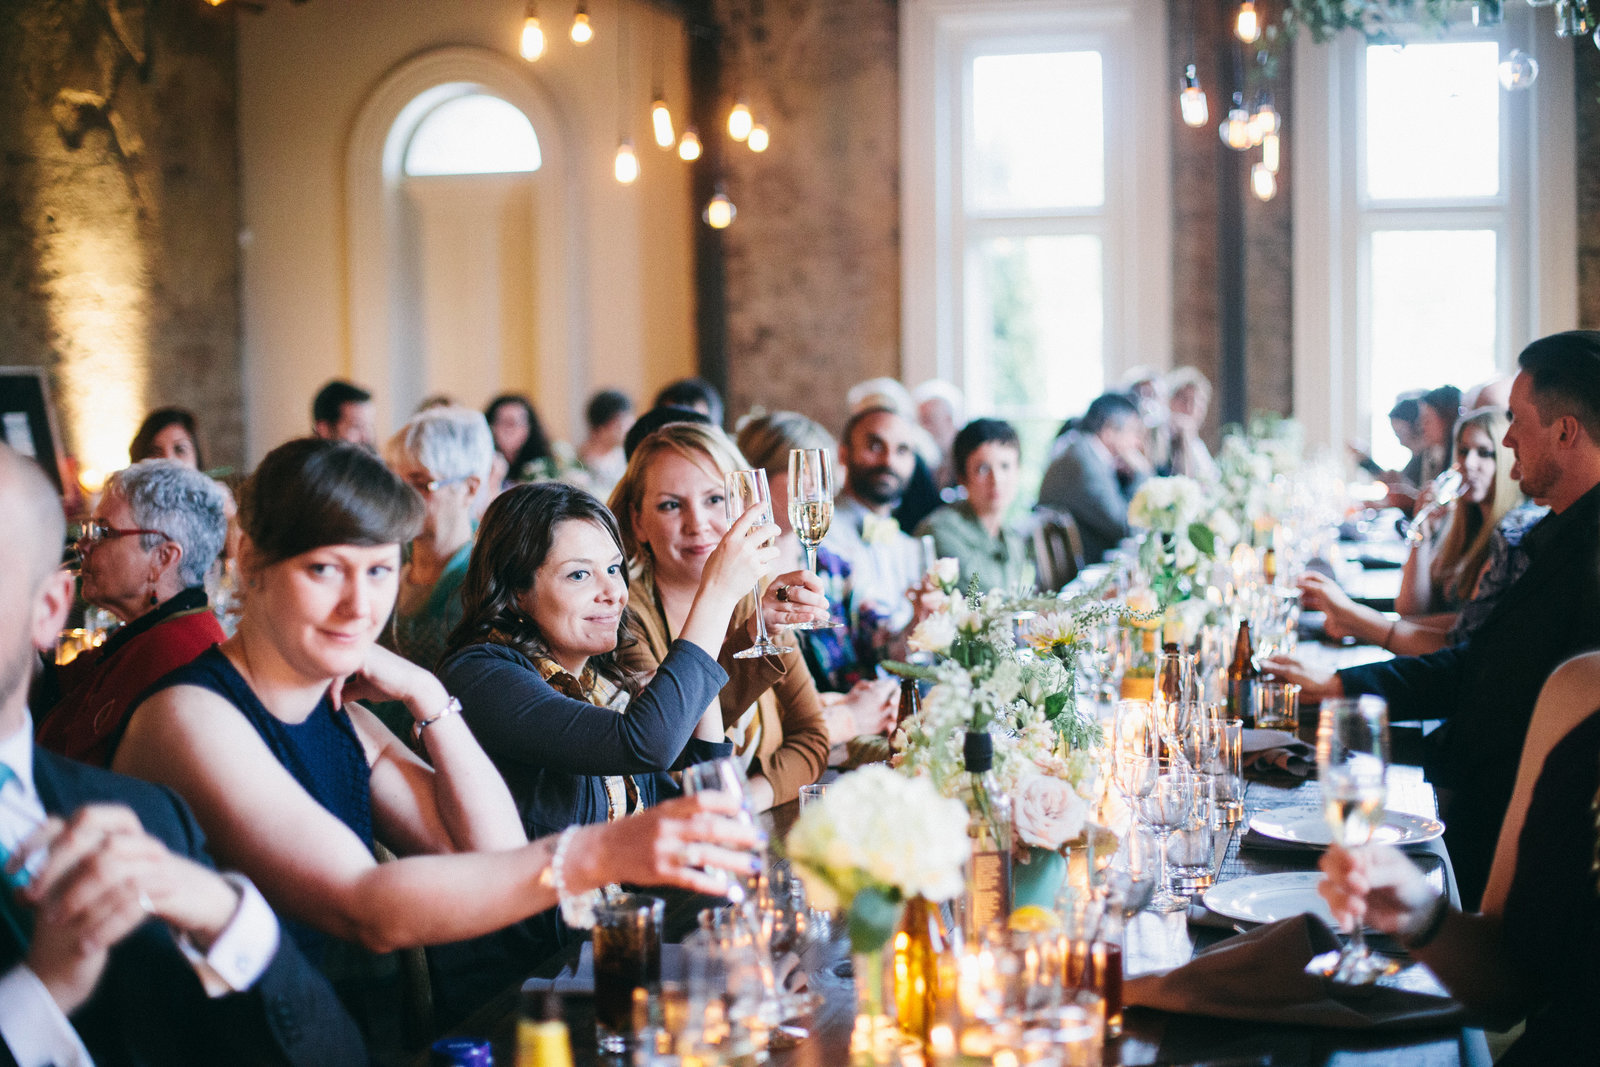 The Guest Count Counts: Your Wedding Guest List via TheELD.com